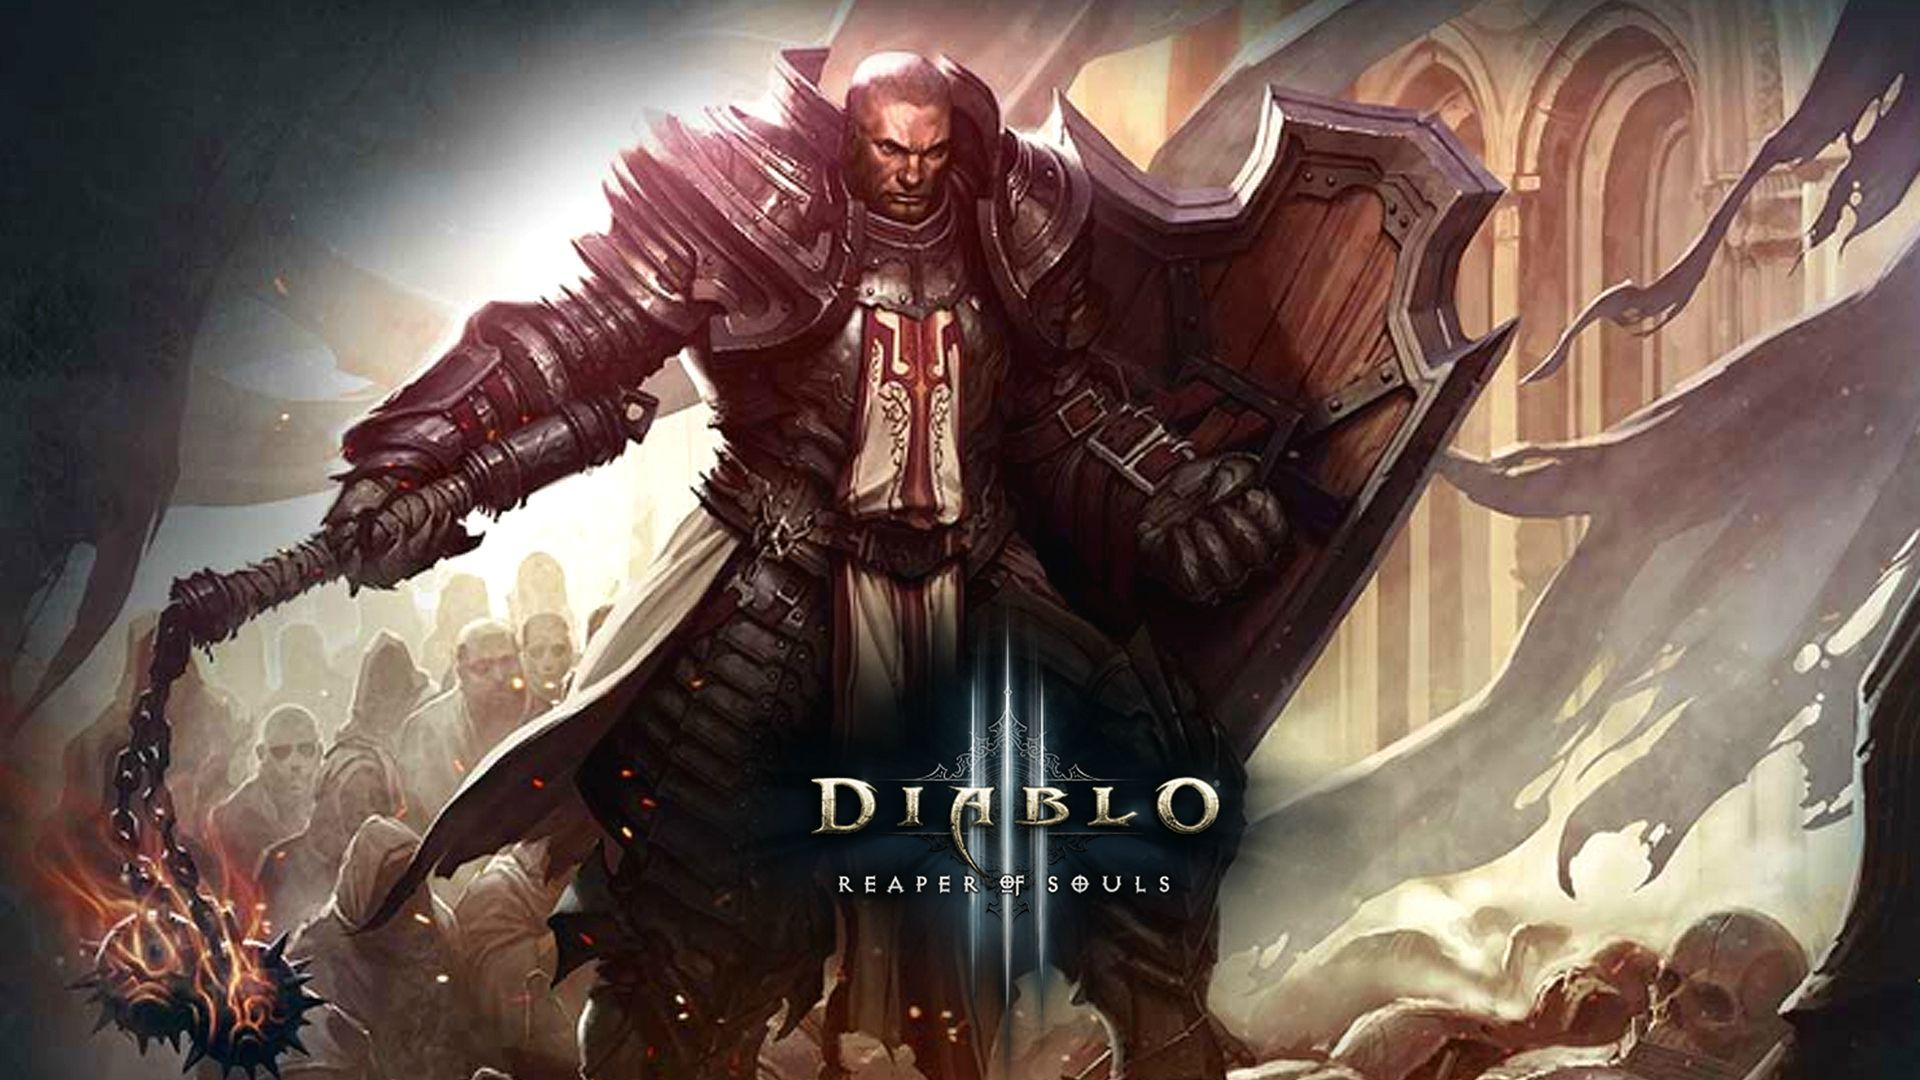 Crusader, Diablo 3 | Gaming | Pinterest | Crusaders